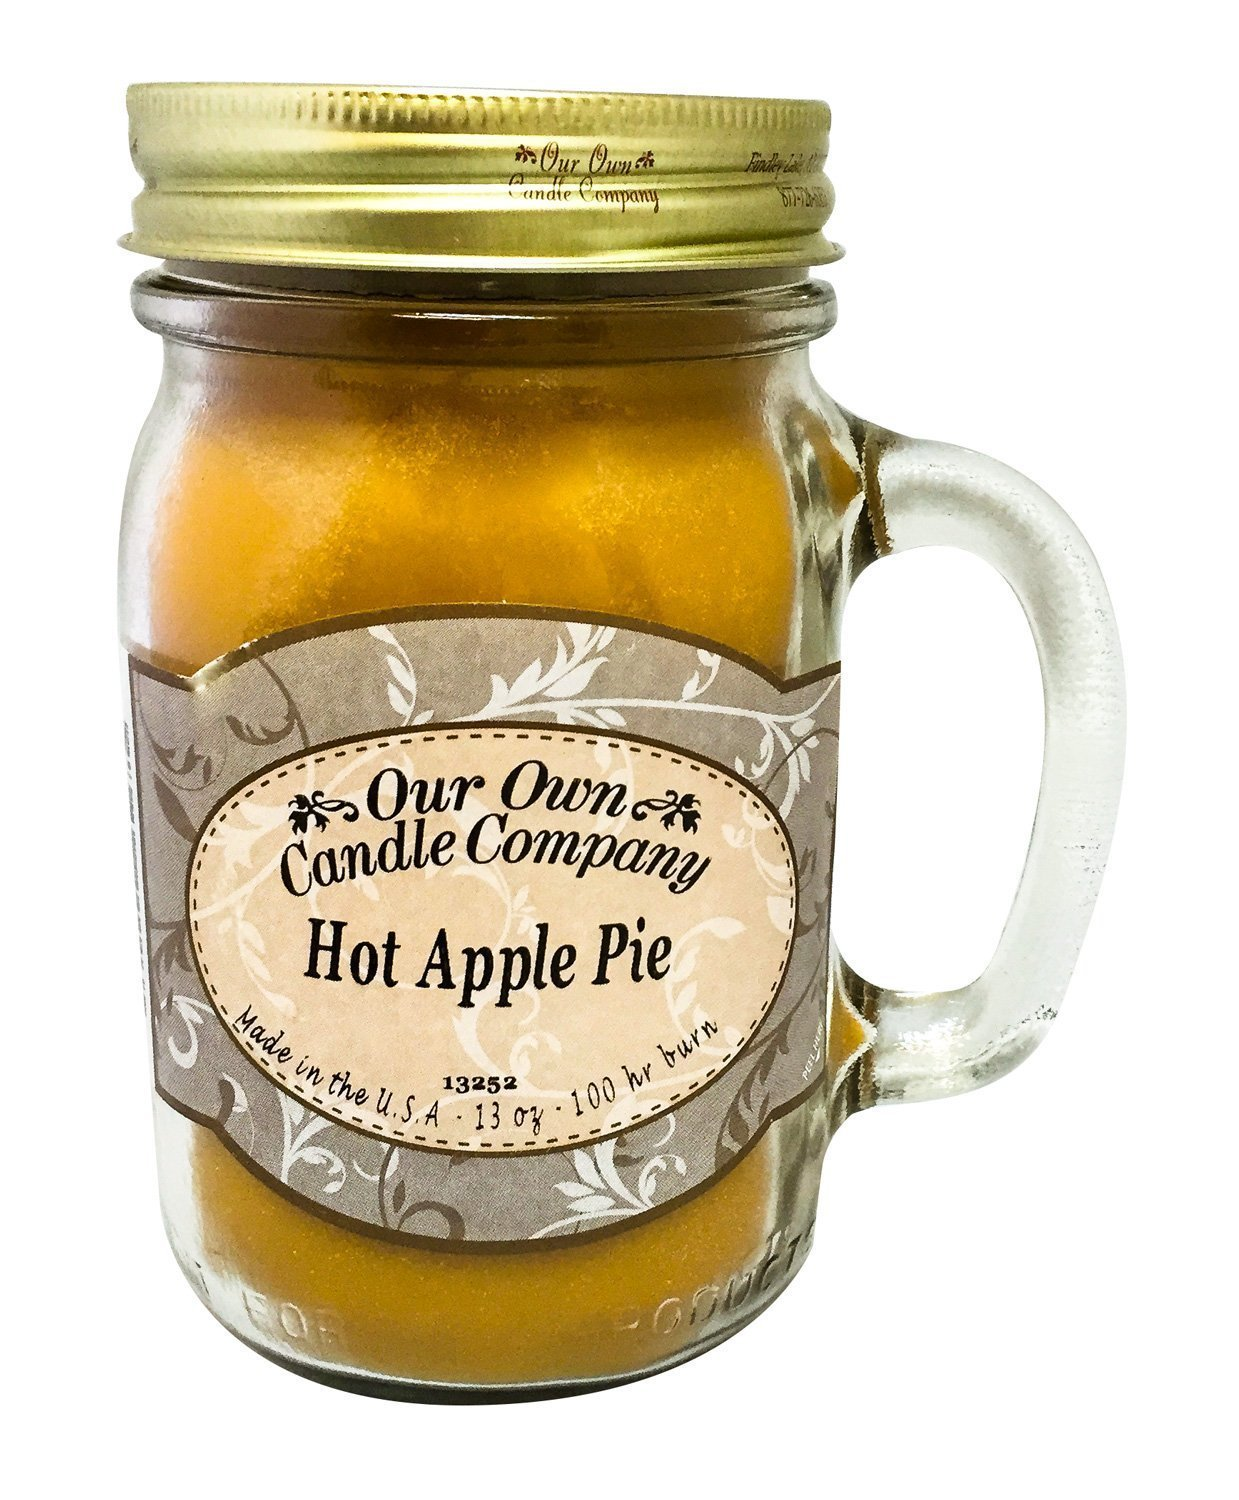 13 oz HOT APPLE PIE Scented Jar Candle (Our Own Candle Company Brand) Made in USA - 100 hr burn time LM-HPP